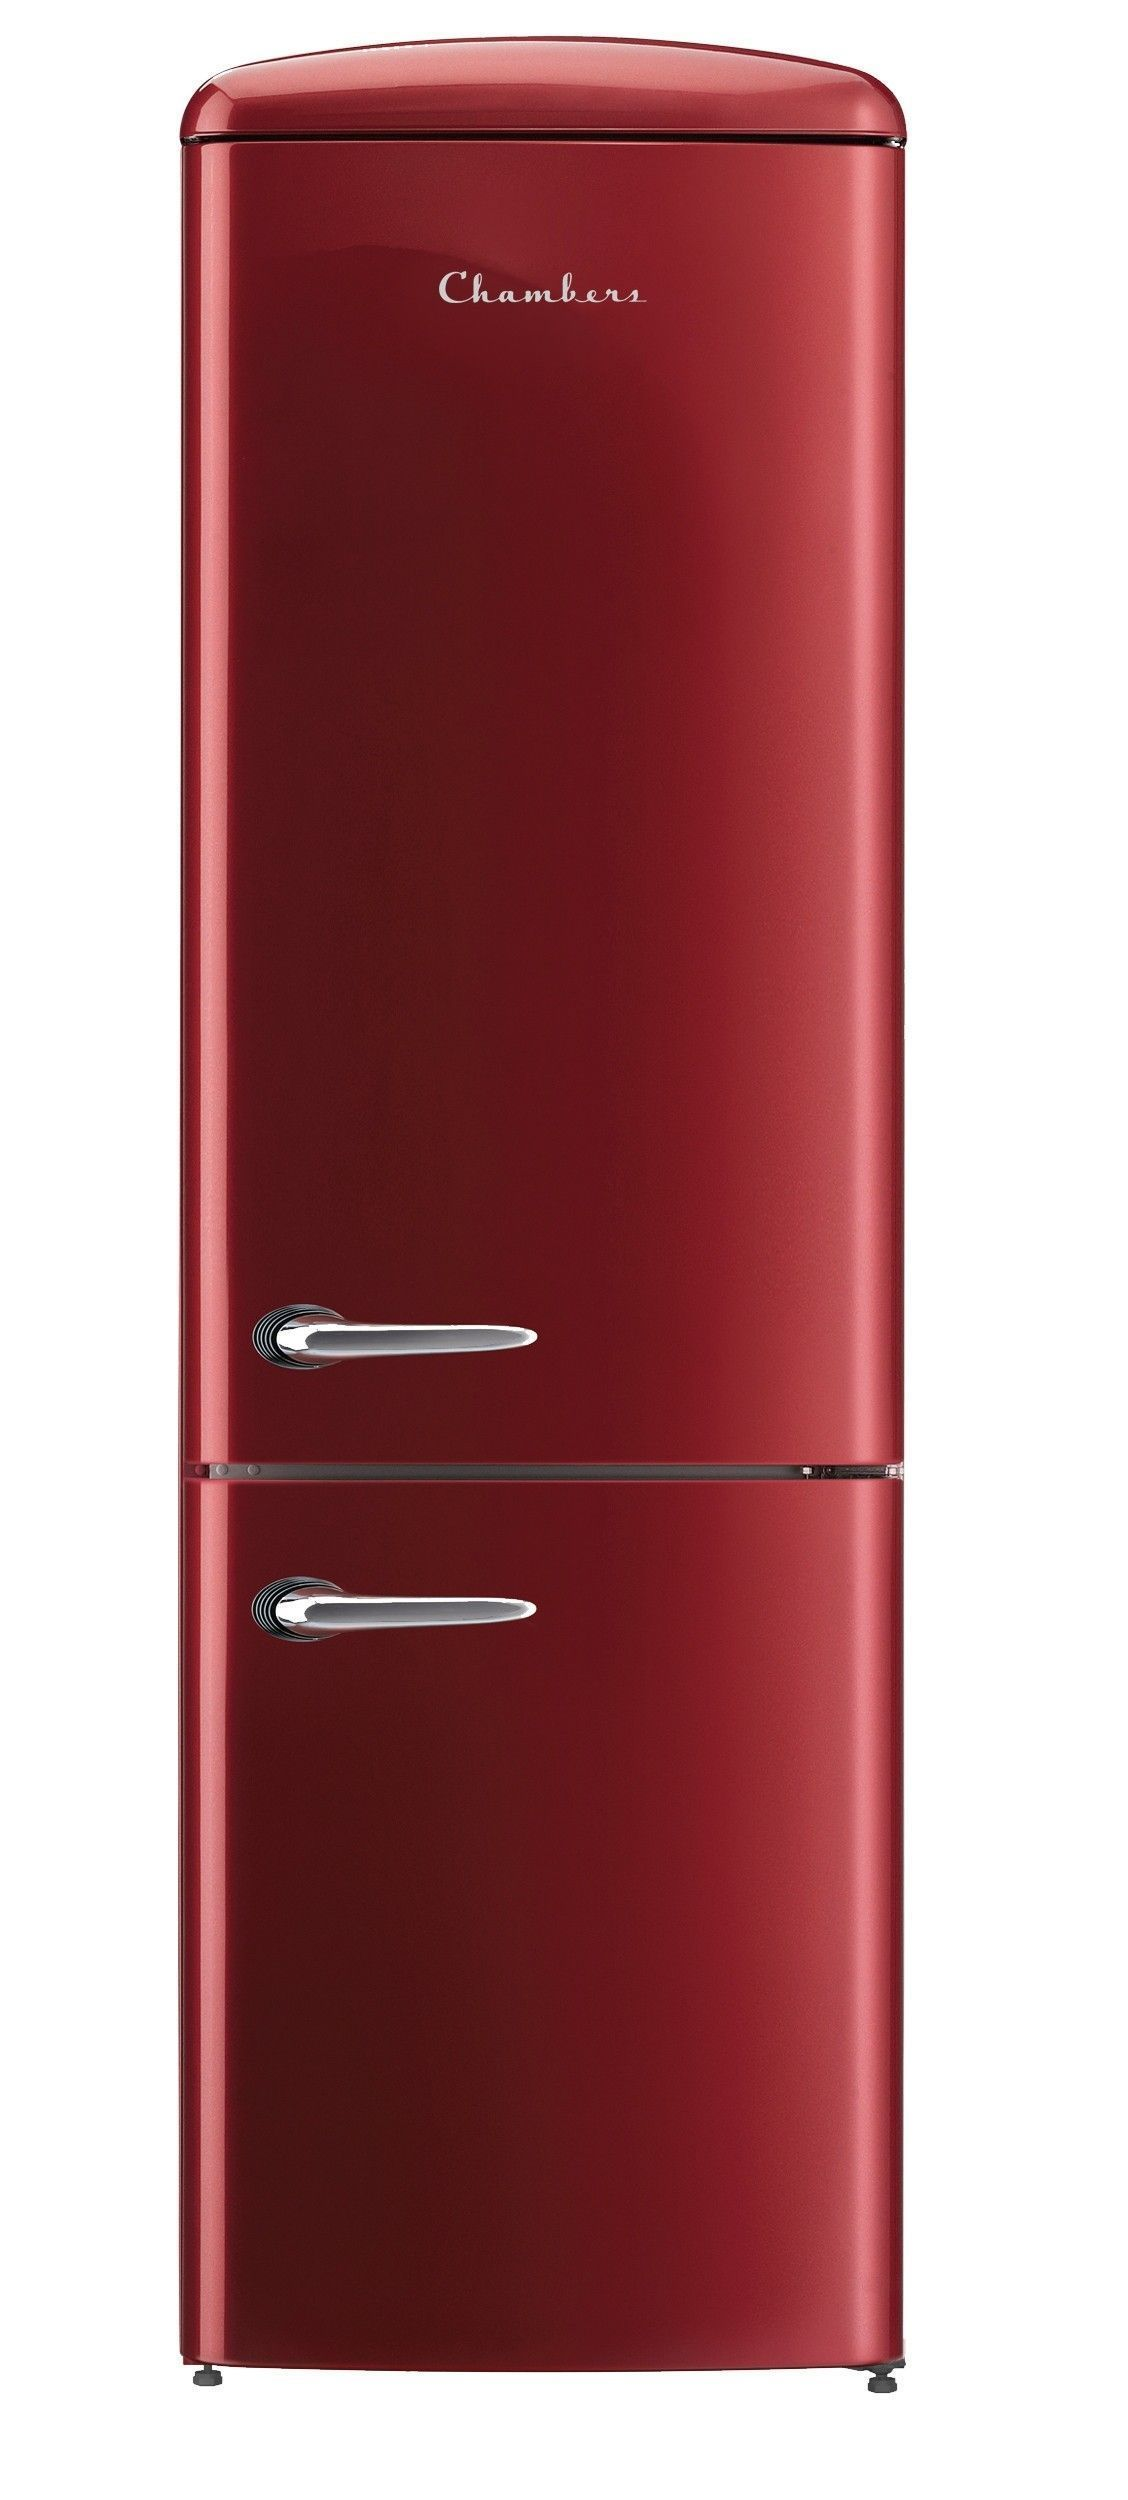 Retro Bordeaux 12 Cu Ft Bottom Freezer Refrigerator Energy Star Retrohomedecor Retro Refrigerator Retro Home Decor Retro Home